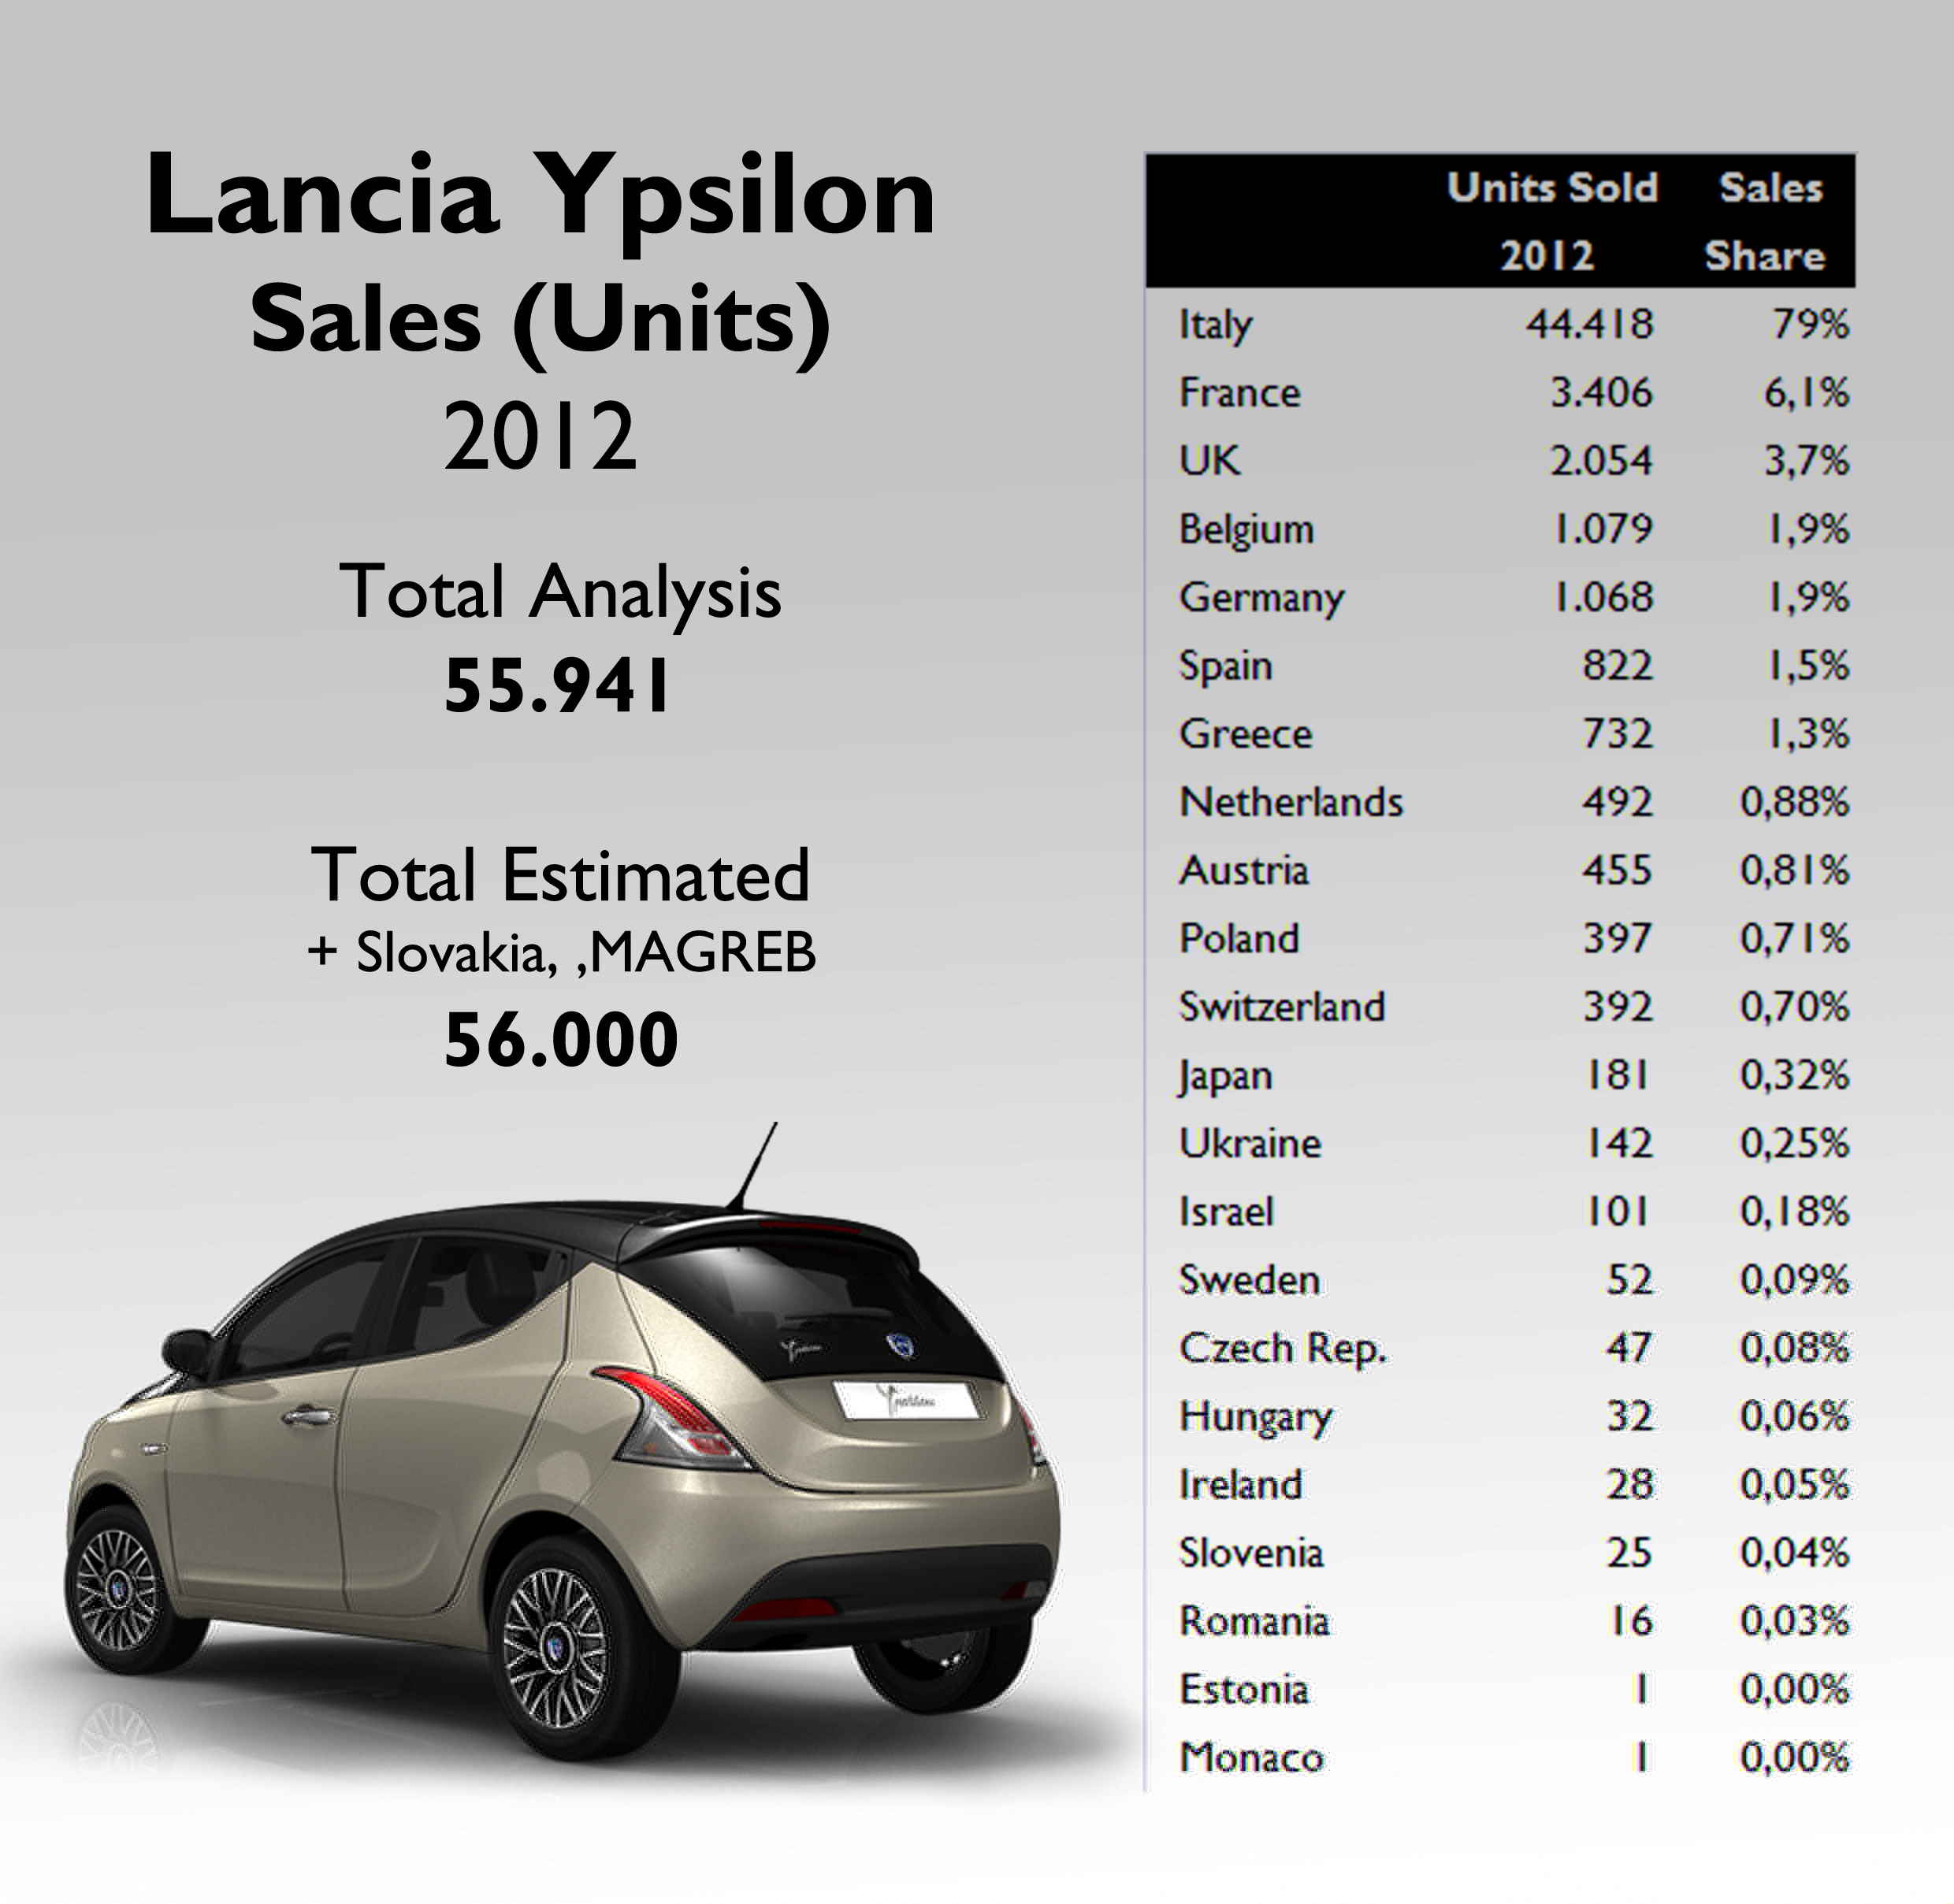 lancia-ypsilon-2012-sales-by-country.jpg